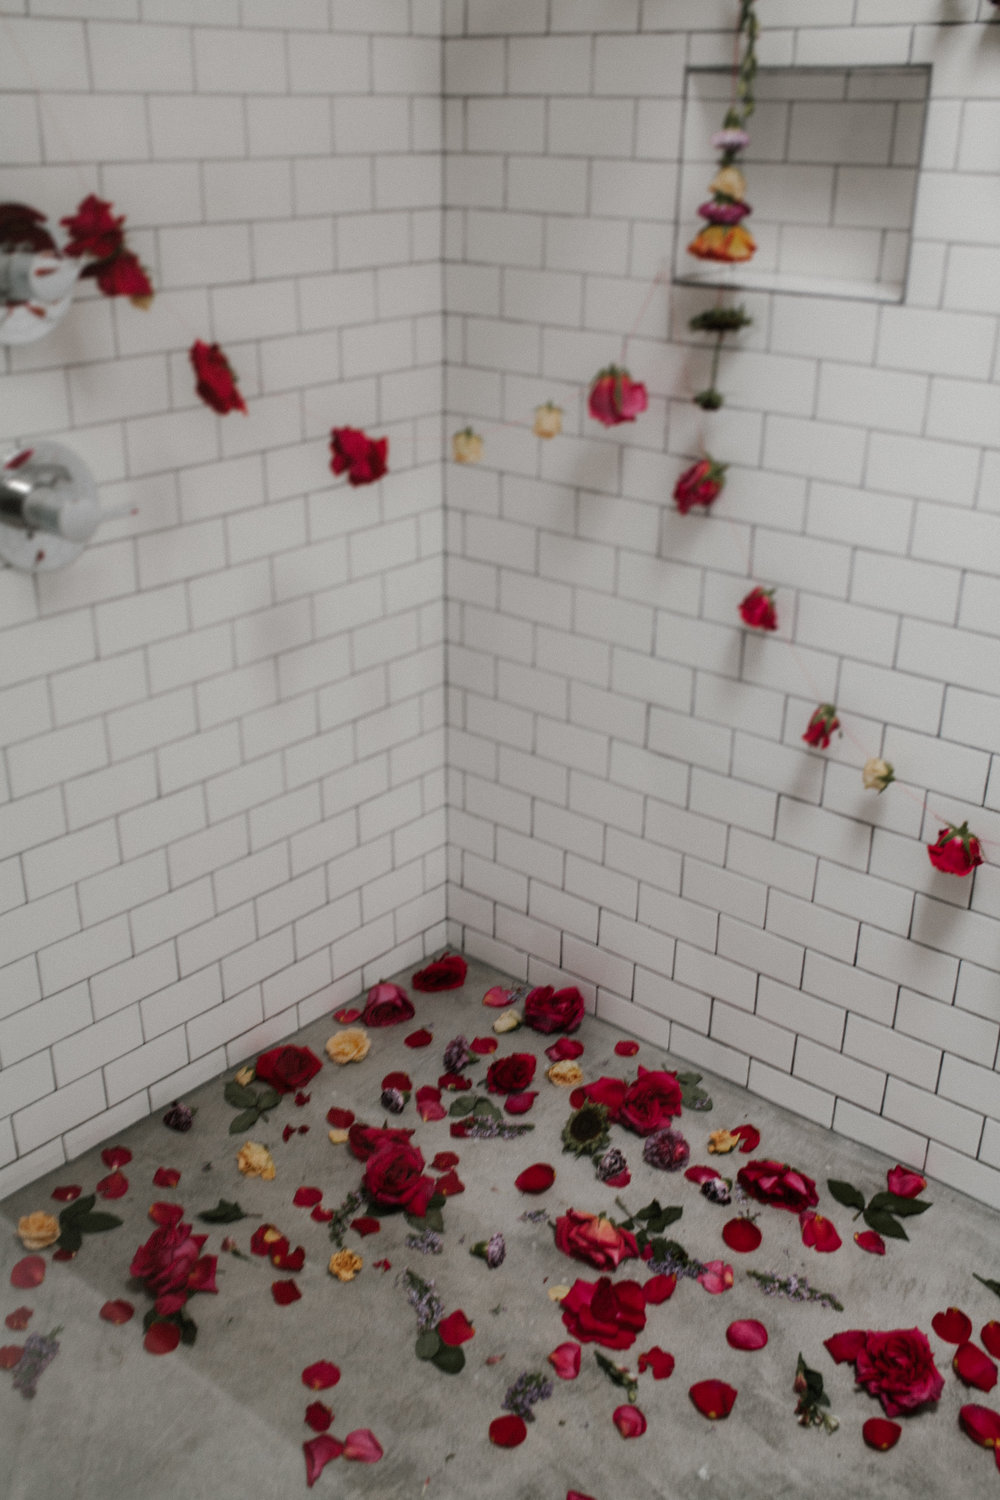 Nontraditional Wedding Inspiration - Flowers in the Shower